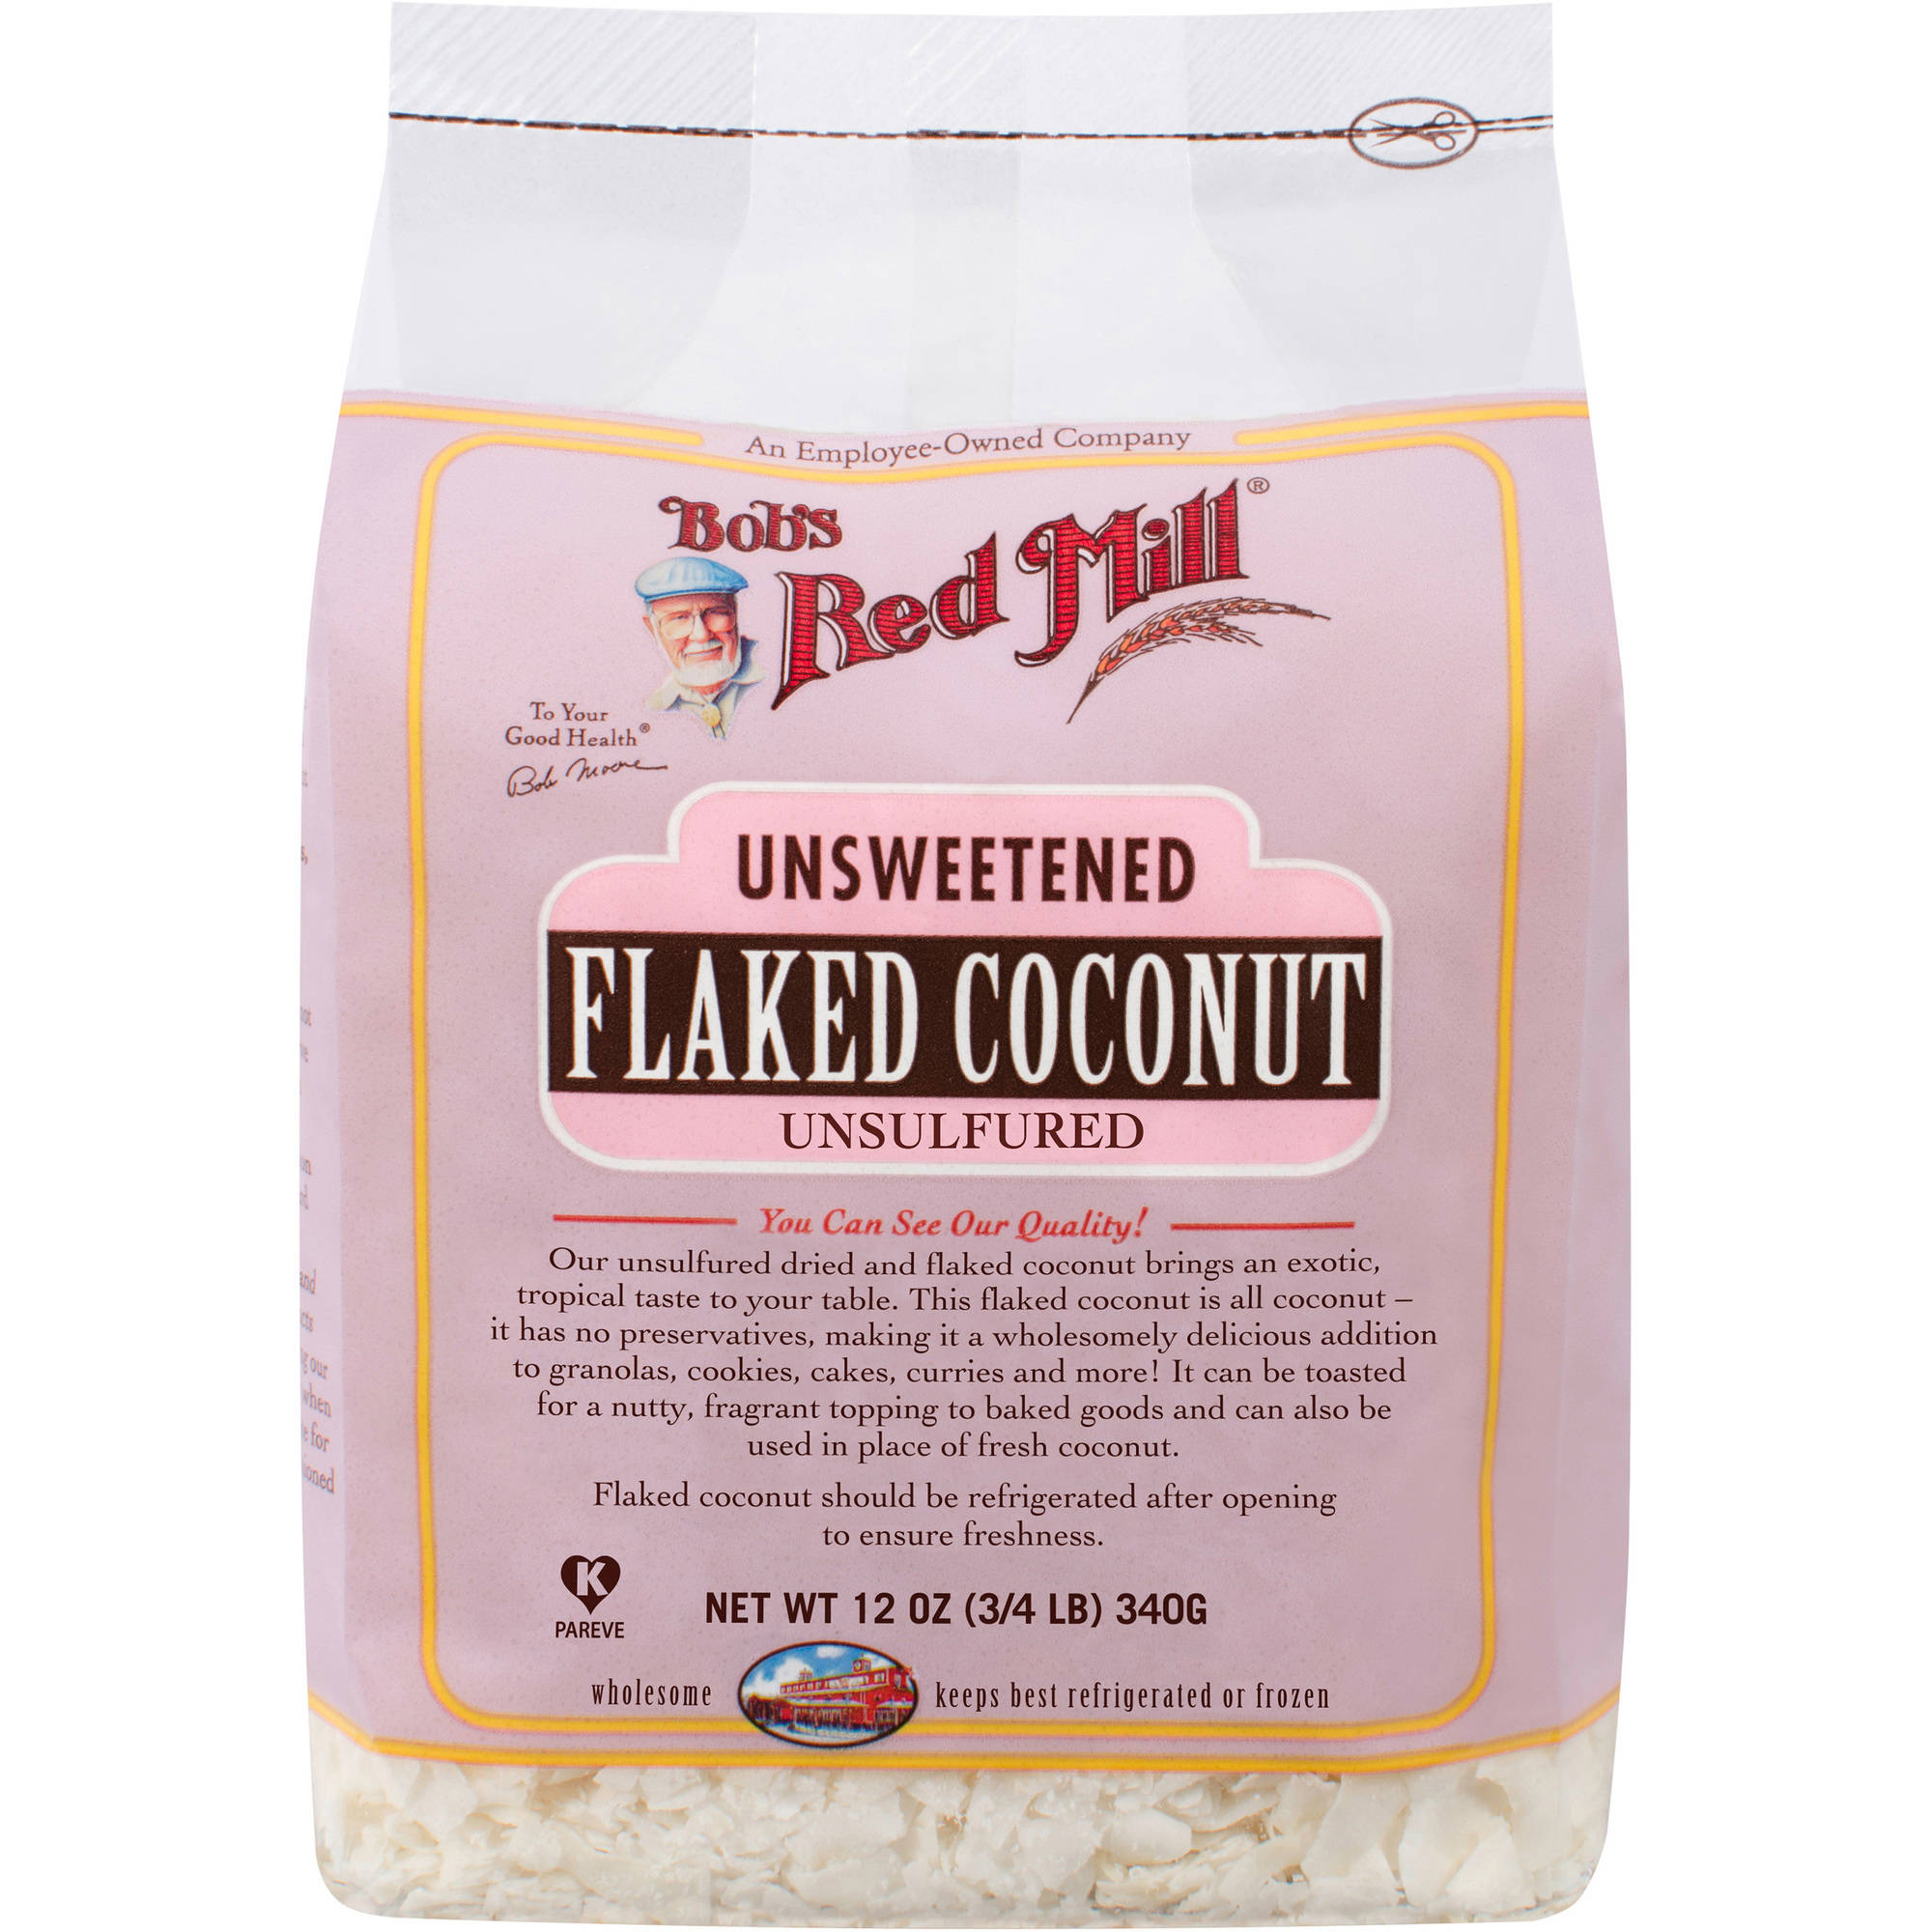 Bob's Red Mill Flaked Unsweetened Coconut, 12 oz (Pack of 4) by Generic